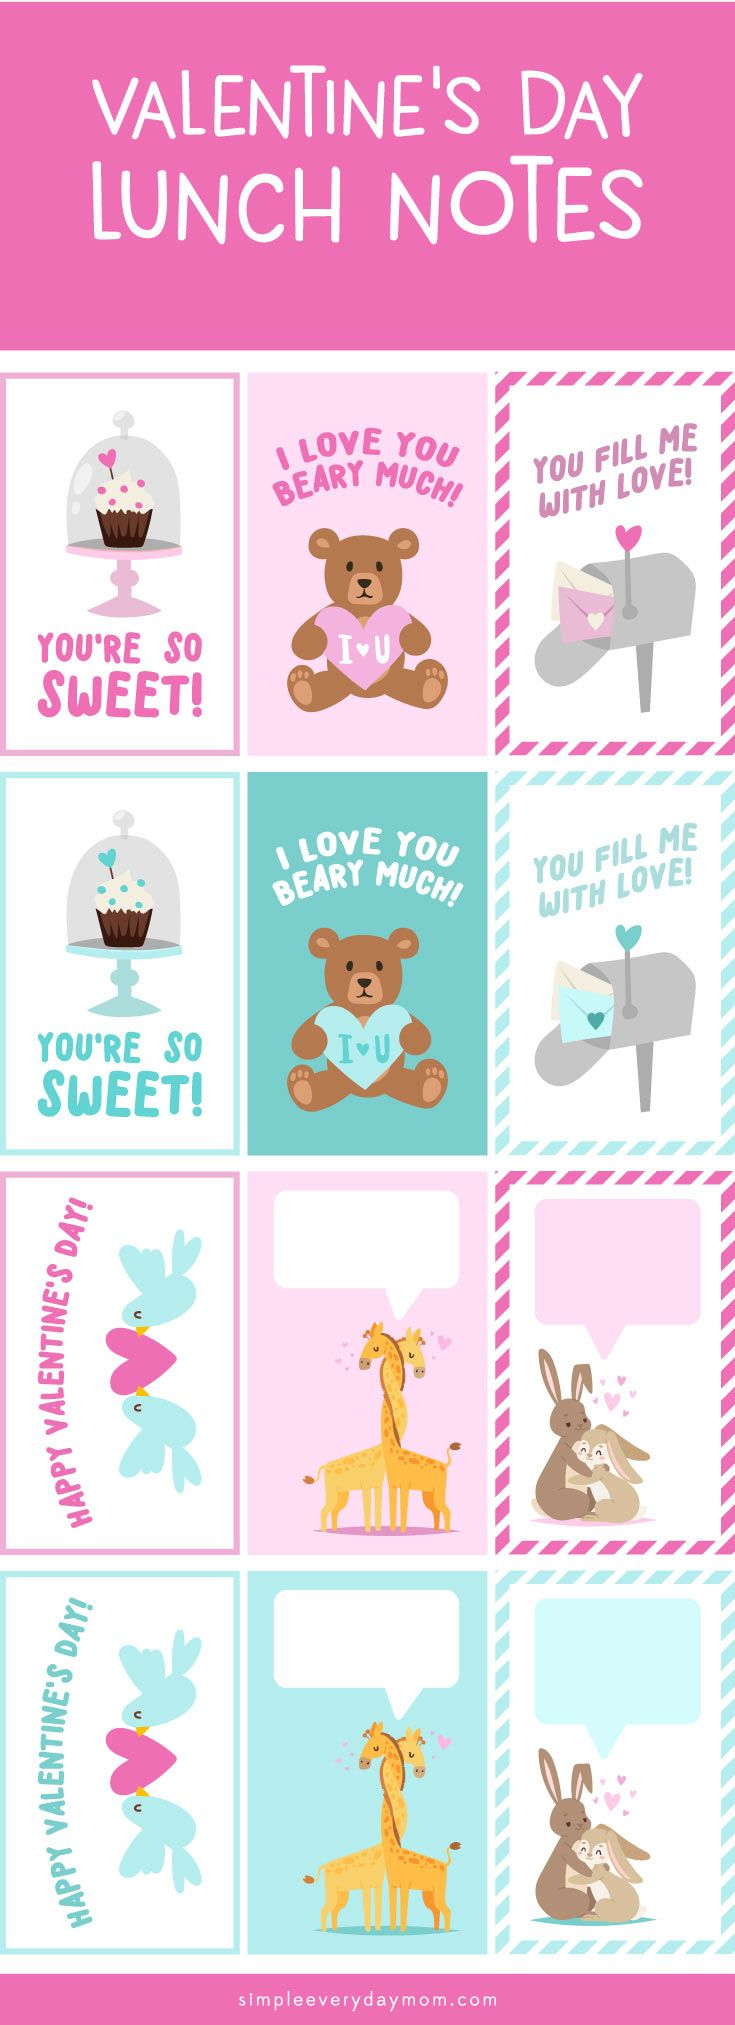 10 Entertaining Valentines Day Activities For Kids | Pinterest ...